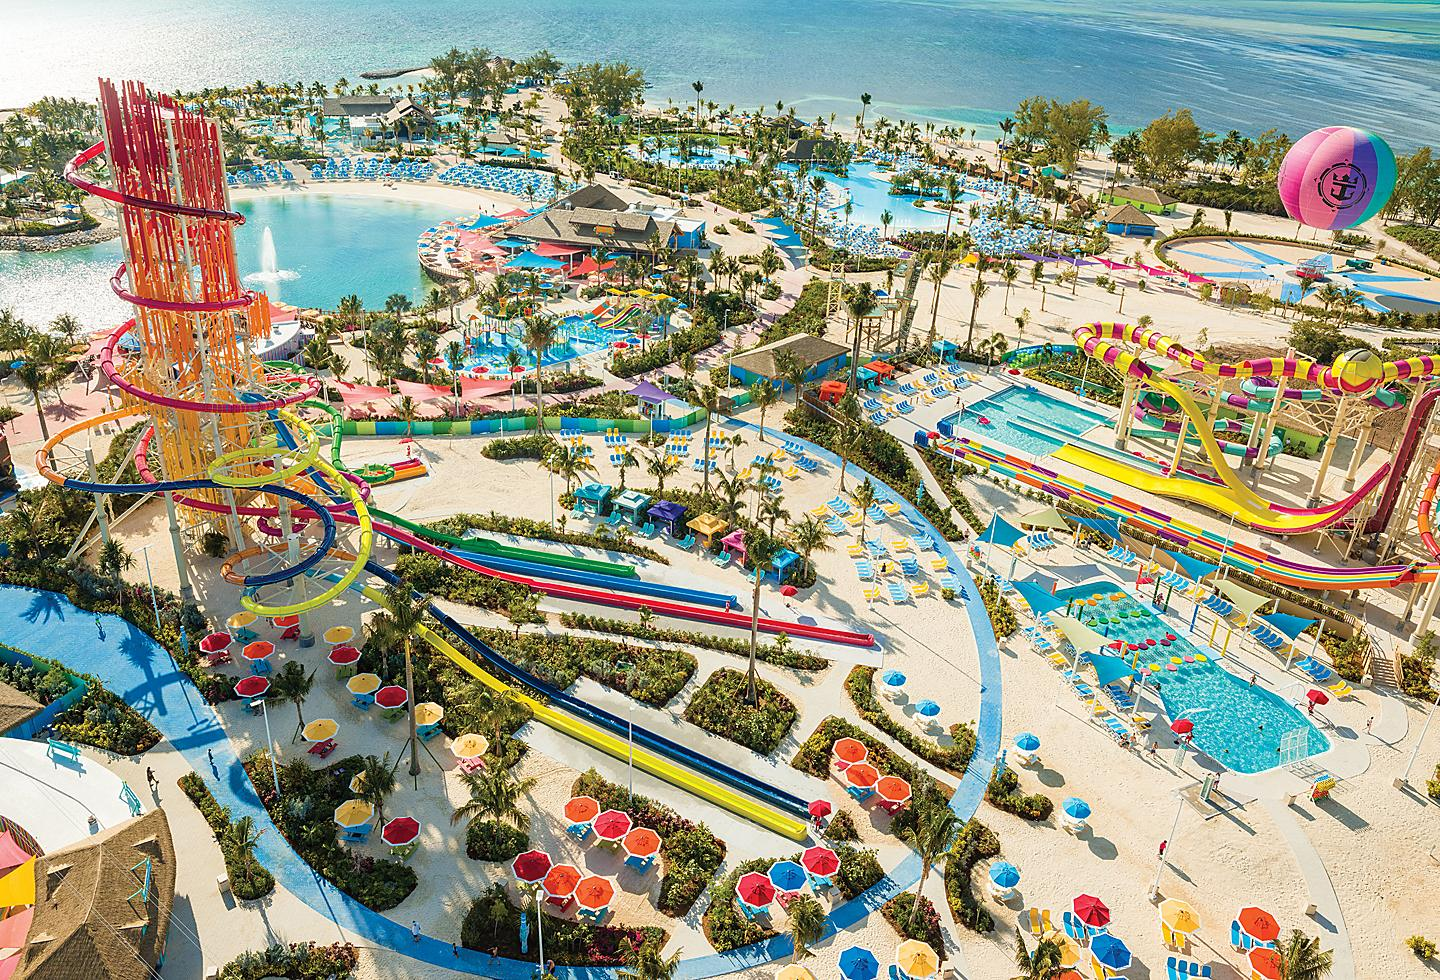 Perfect Day Coco Cay Island Aerial Sunny Day, Thrill Waterpark